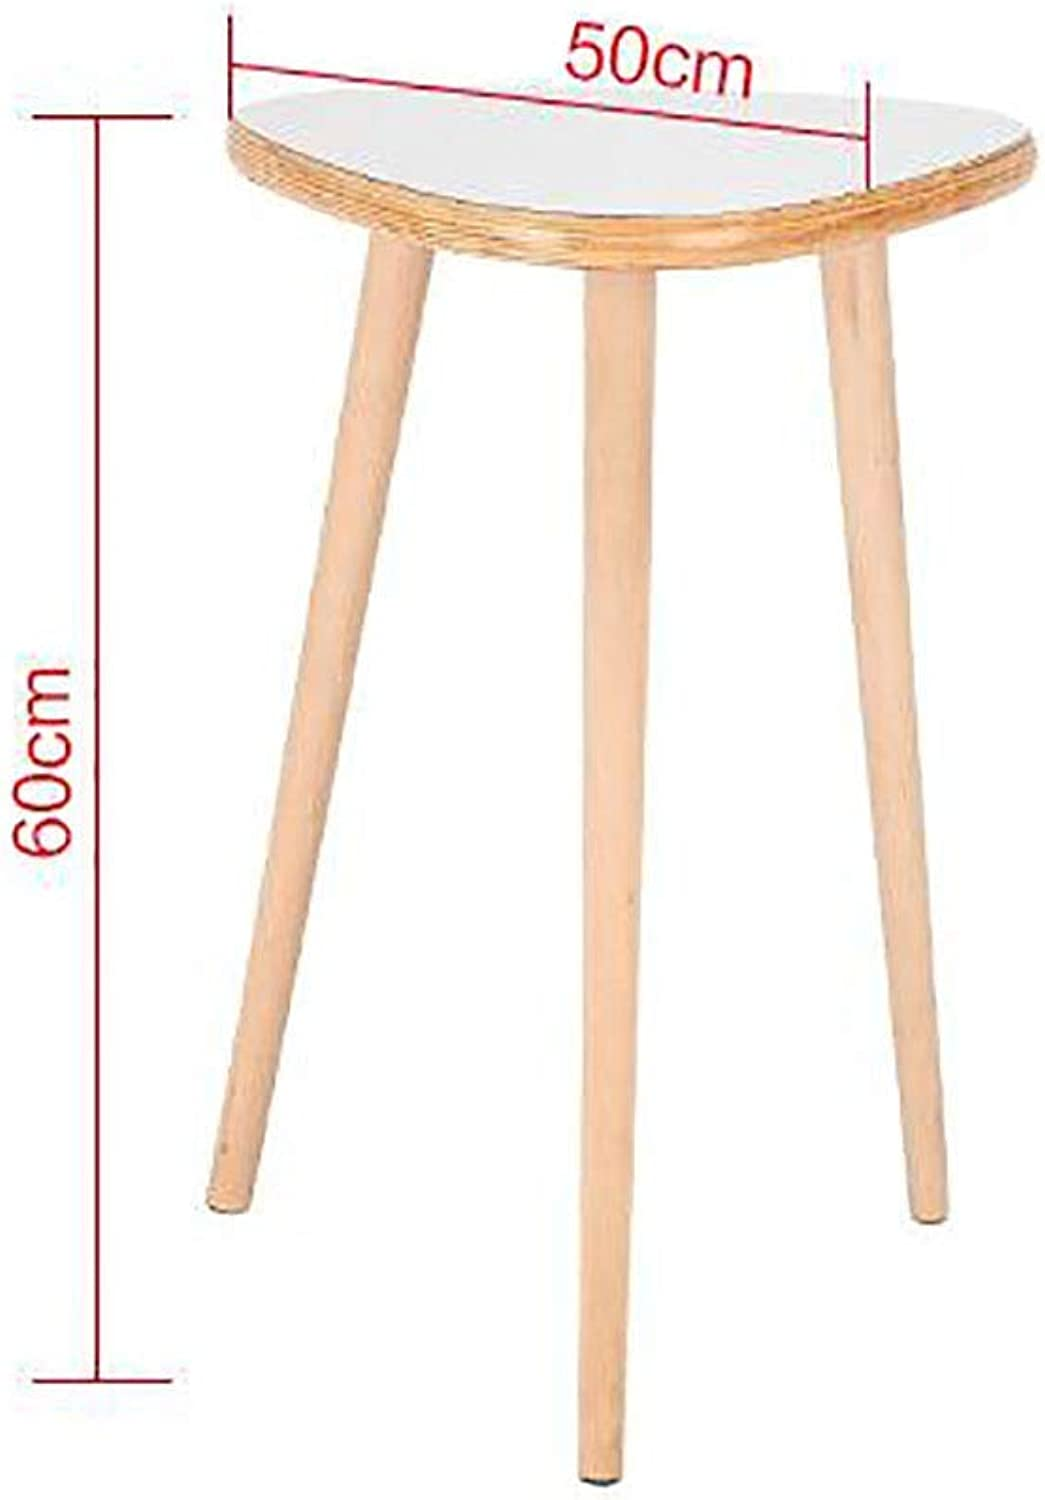 TJTG Solid Wood Foot Tea Table Sofa Side Small Round Table Nordic Mini Round Table Corner Coffee Table Home Office Desk (Size   50cm)